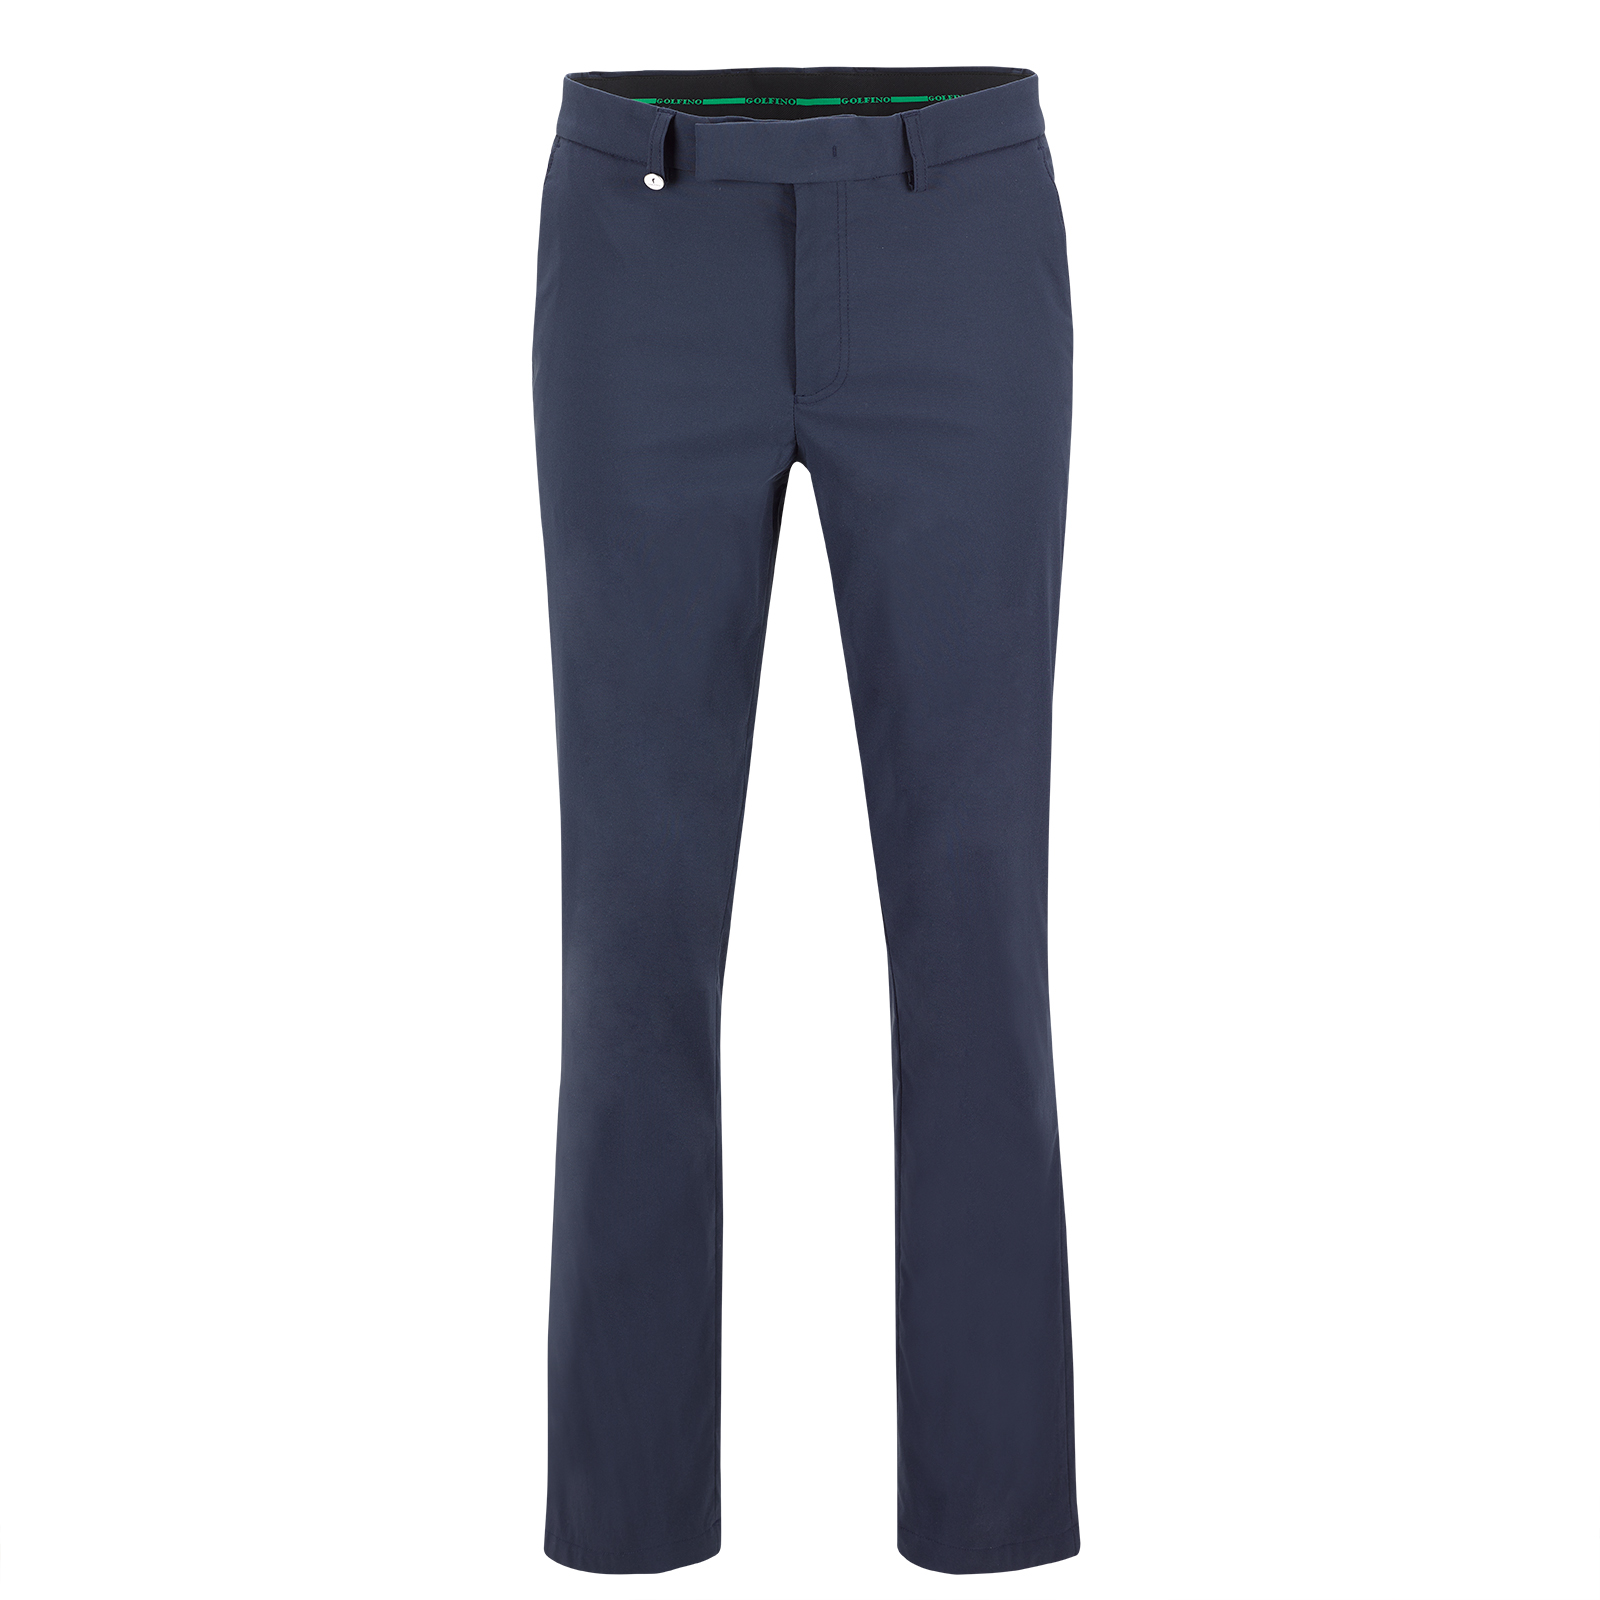 Performance men's functional golf trousers with Cold Protection